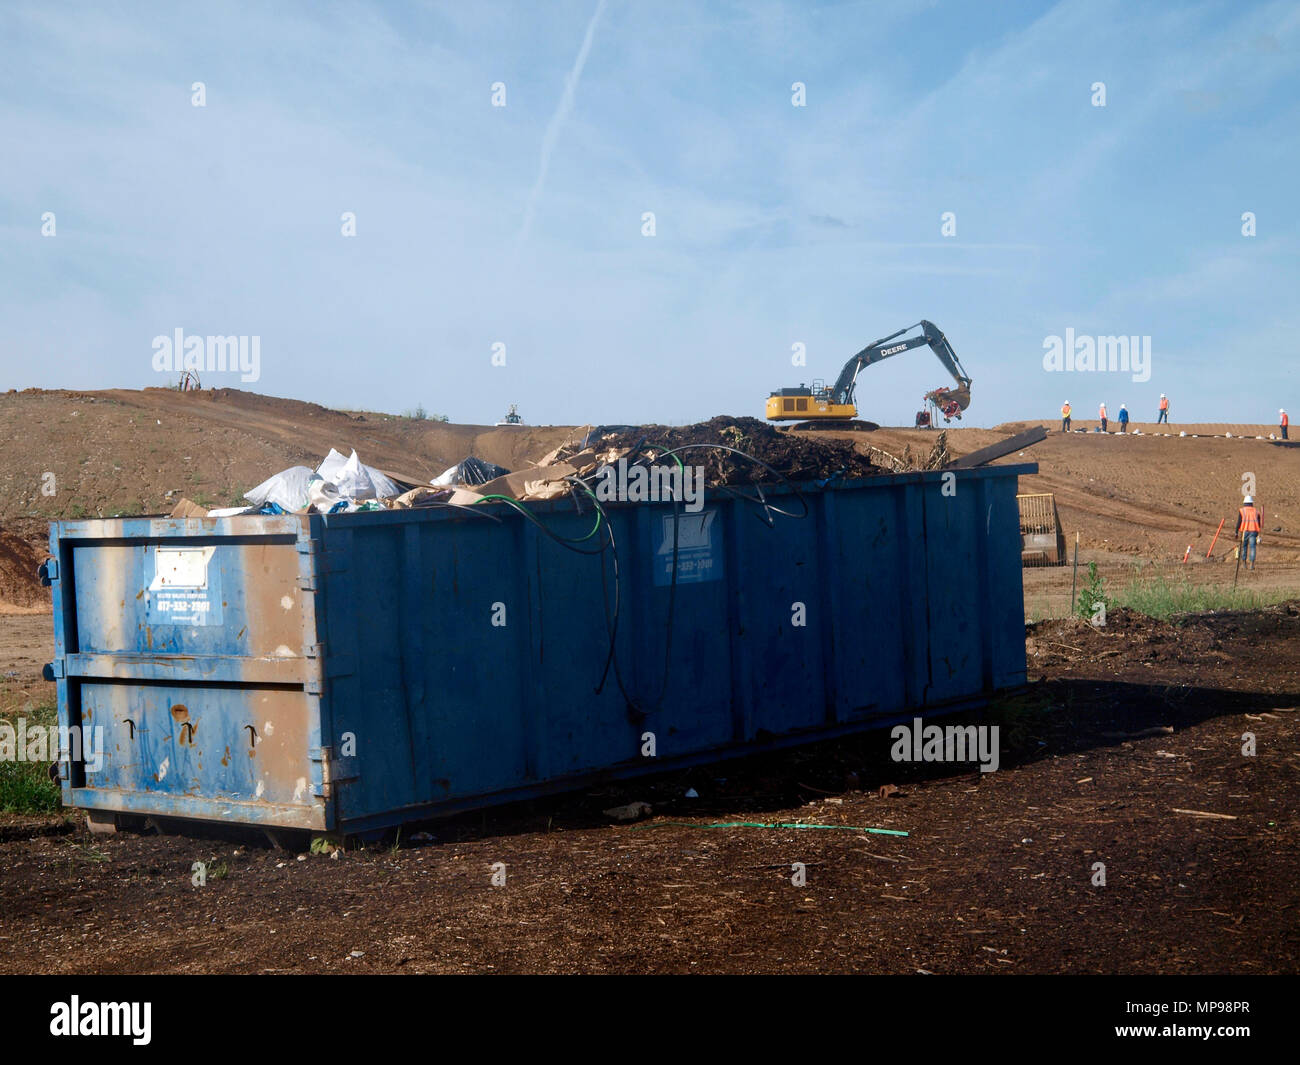 In the rapidly growing Dallas and Fort Worth Texas area, their is also a growing problem to handle all the garbage. Landfills are climbing higher and many fear they pollute the air they breath and the water they drink. Just a sign of disposable consumption. - Stock Image